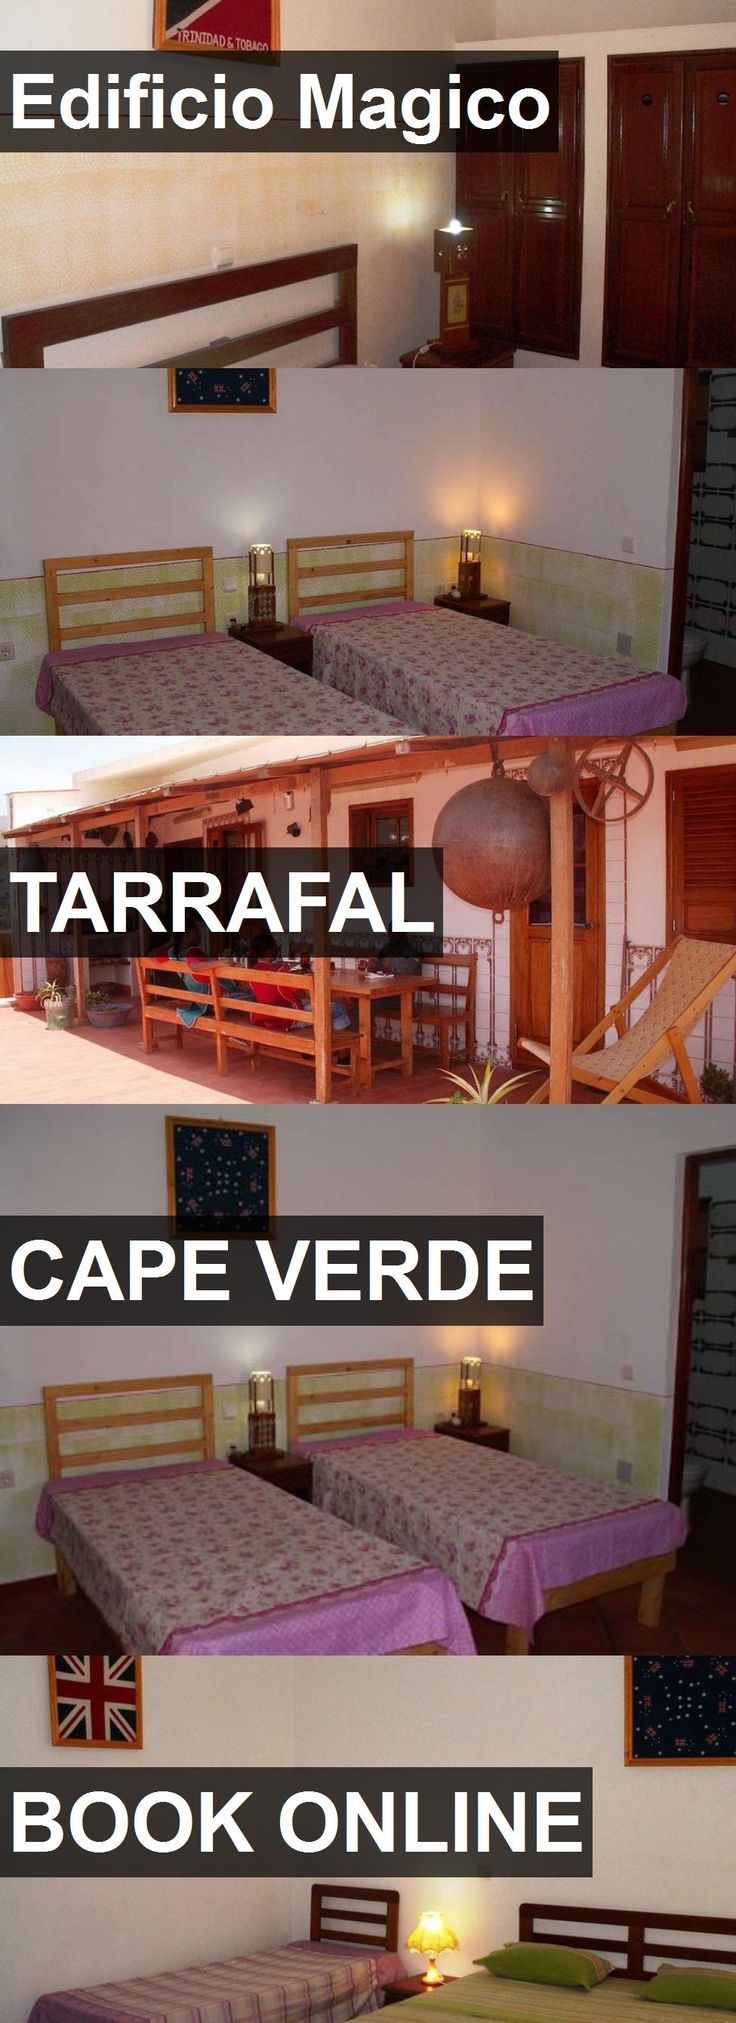 Hotel Edificio Magico in Tarrafal, Cape Verde. For more information, photos, reviews and best prices please follow the link. #CapeVerde #Tarrafal #travel #vacation #hotel